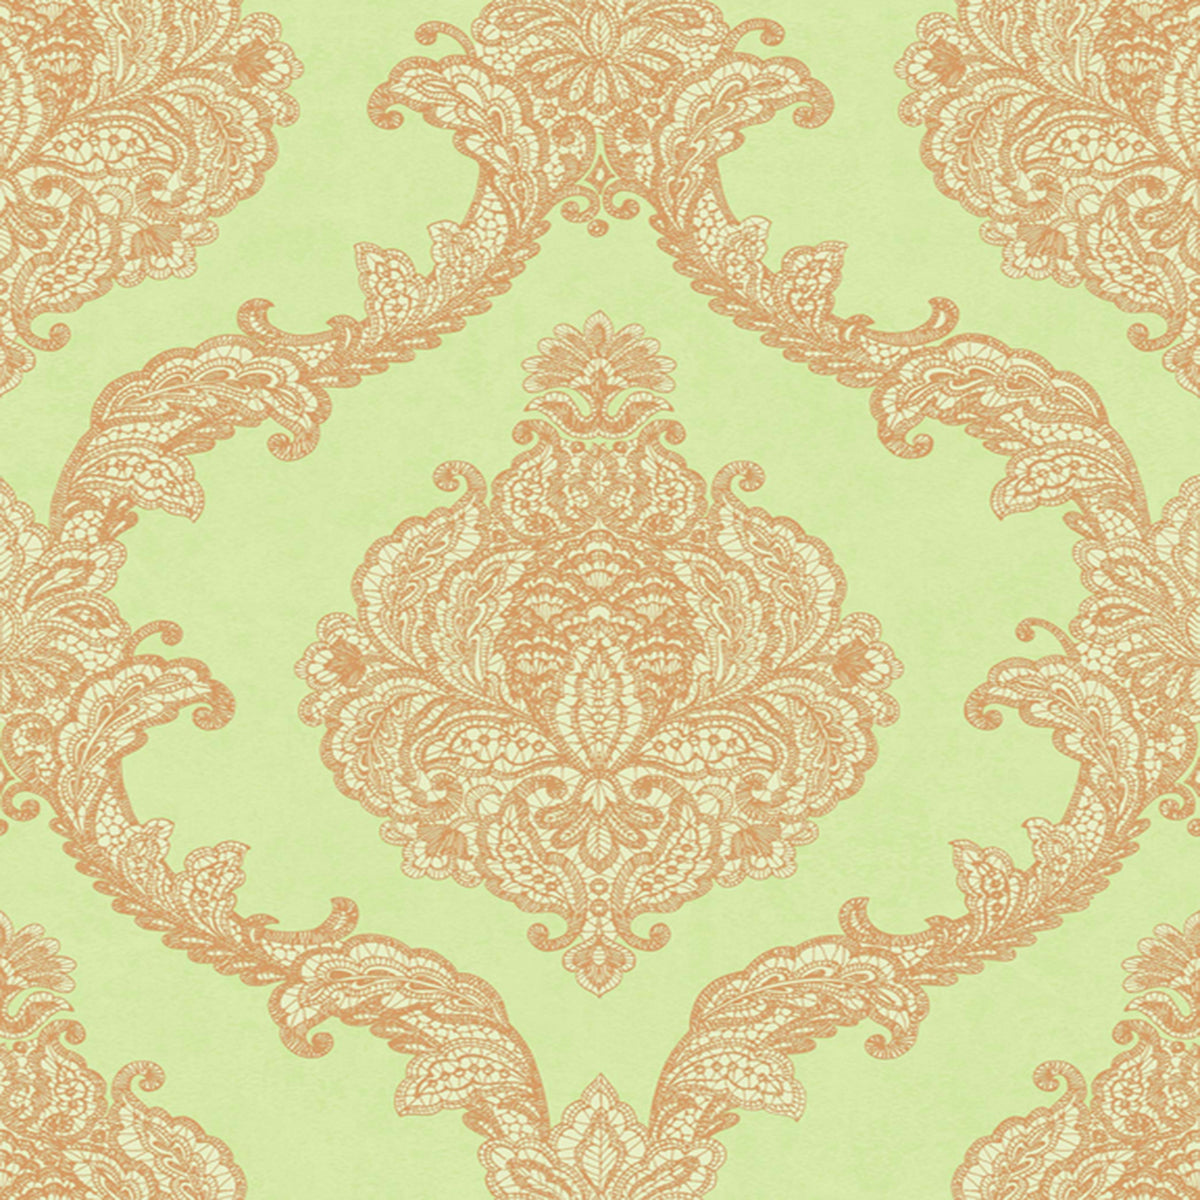 Mixed Metals Chantilly Lace Wallpaper in Green